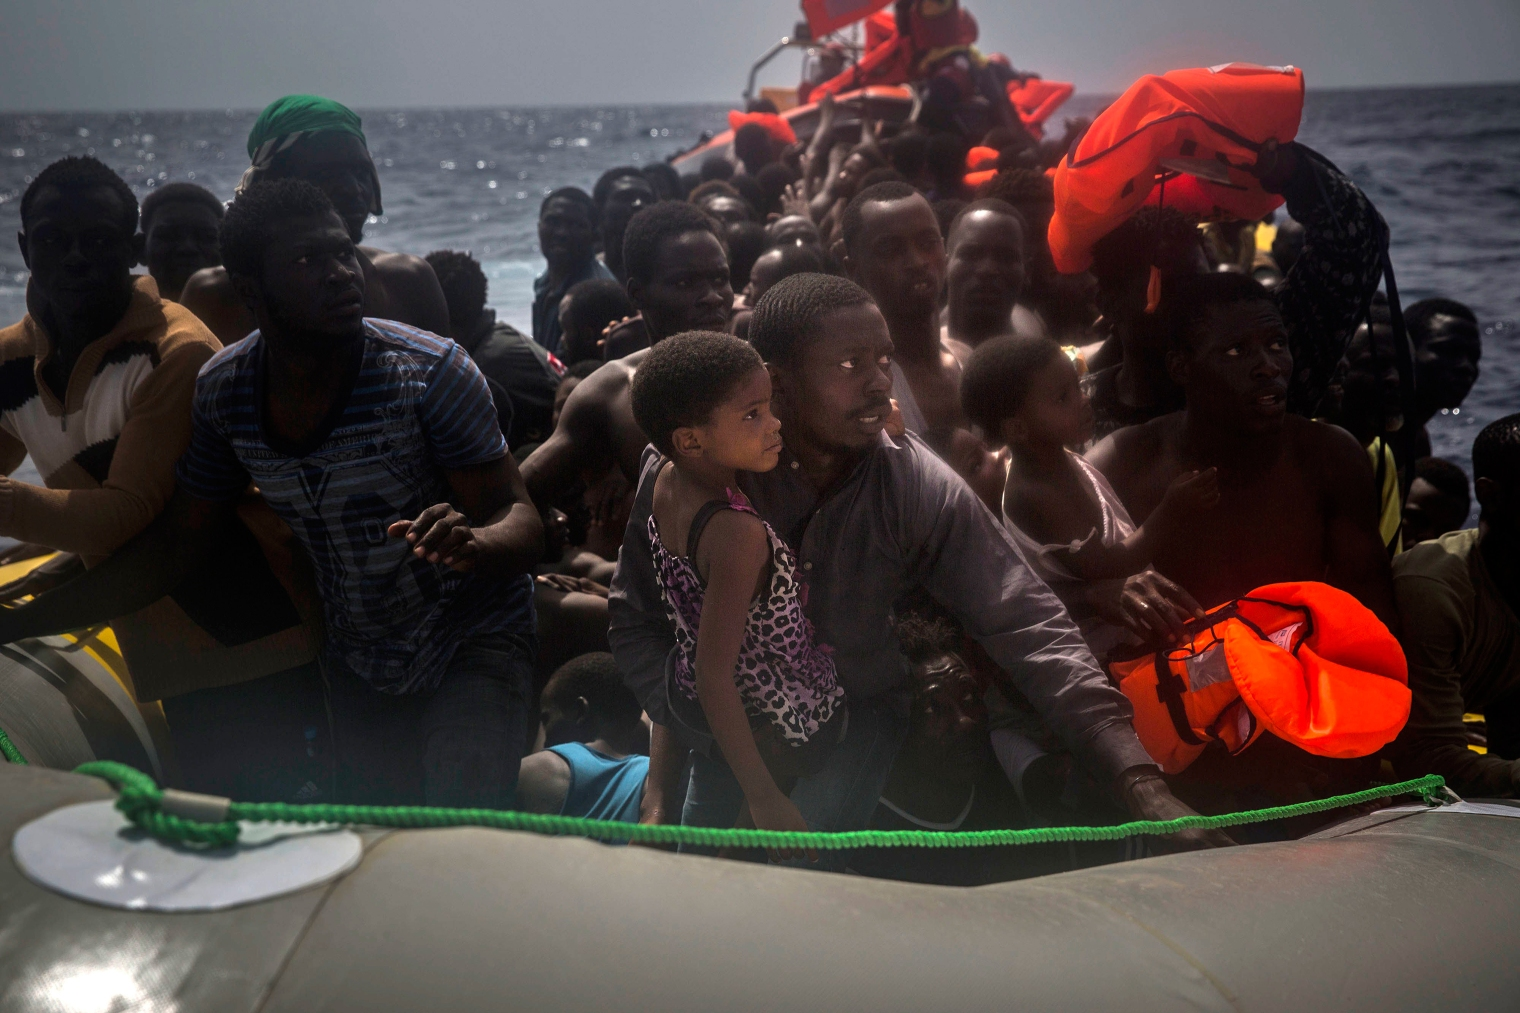 A man and young girl wait to receive life jackets.